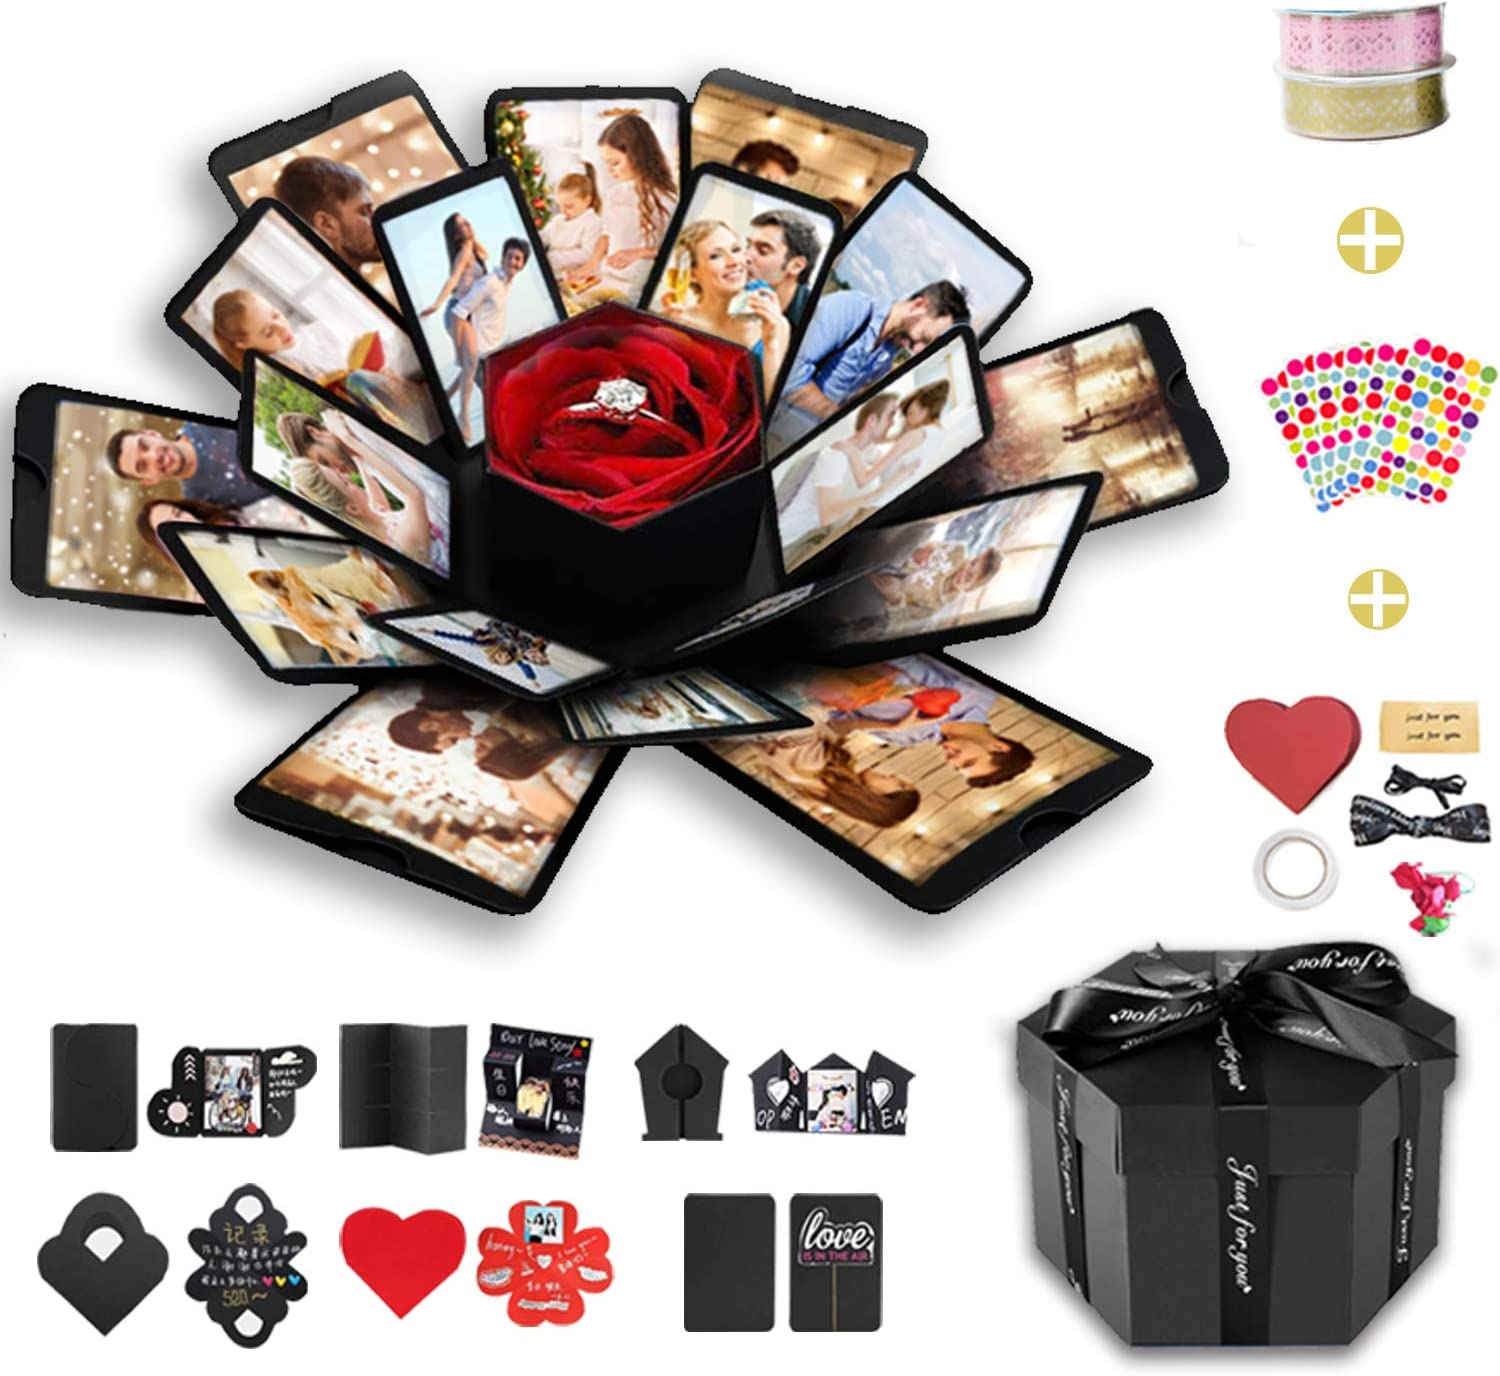 DIY Explosion Gift Box with 6 Faces Anniversary Valentines Day Black Wanateber Explosion Box Assenbled Handmade Photo Box for Birthday Gift Wedding